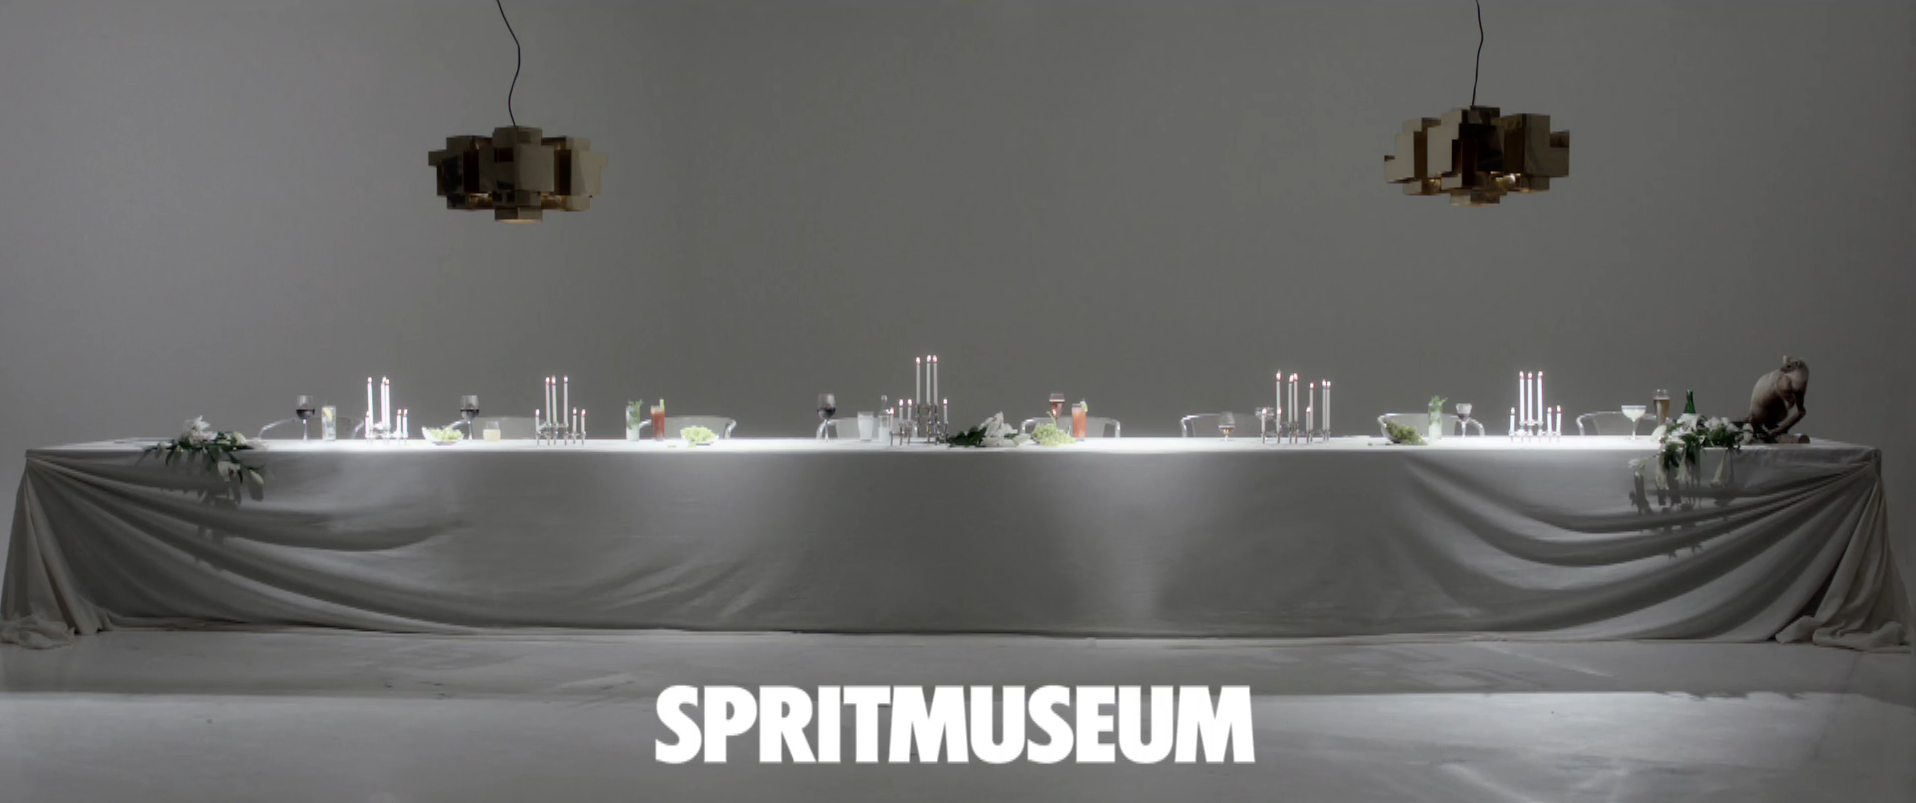 Set design for Spritmuseum